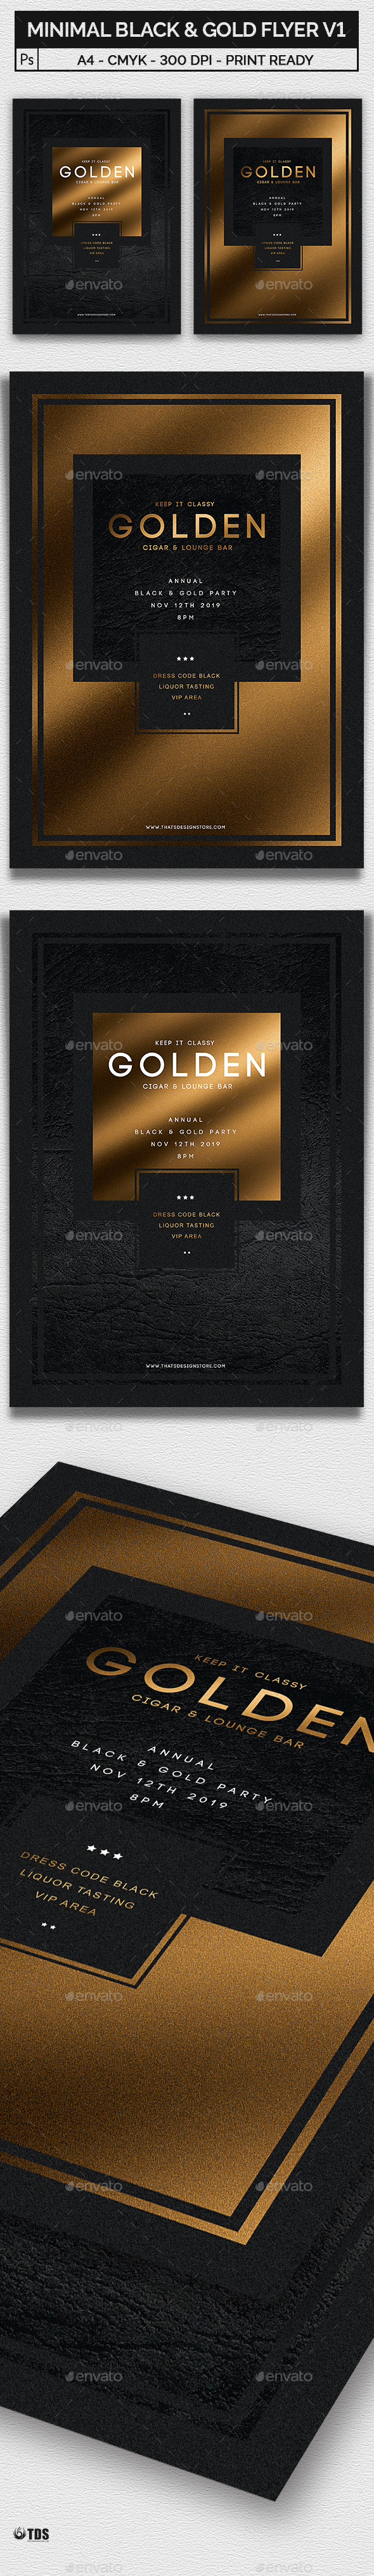 Minimal Black and Gold Flyer Template V1 - Clubs & Parties Events